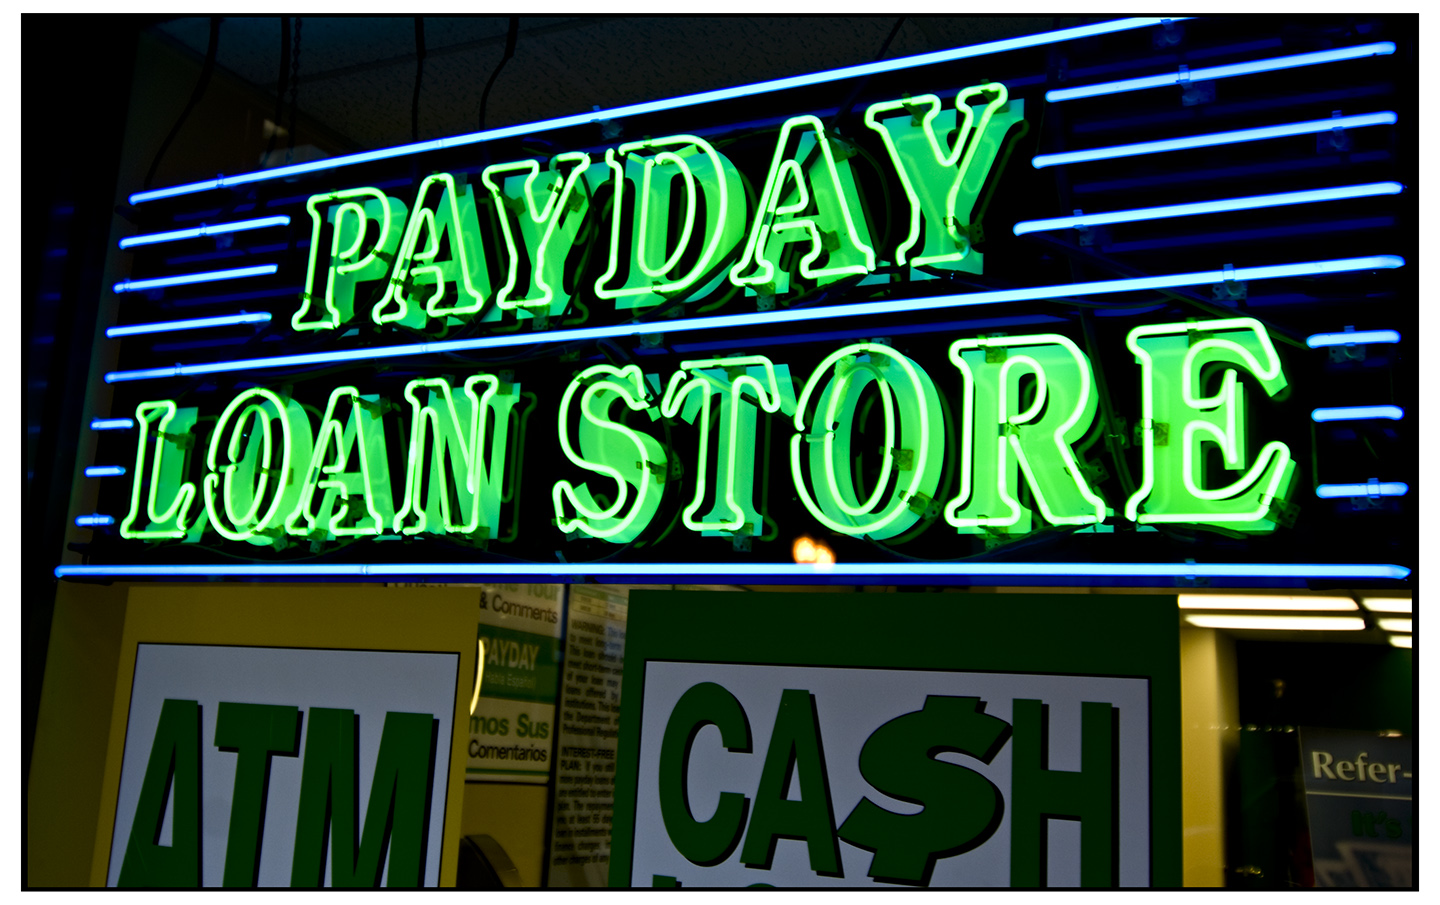 too many payday loans - 2